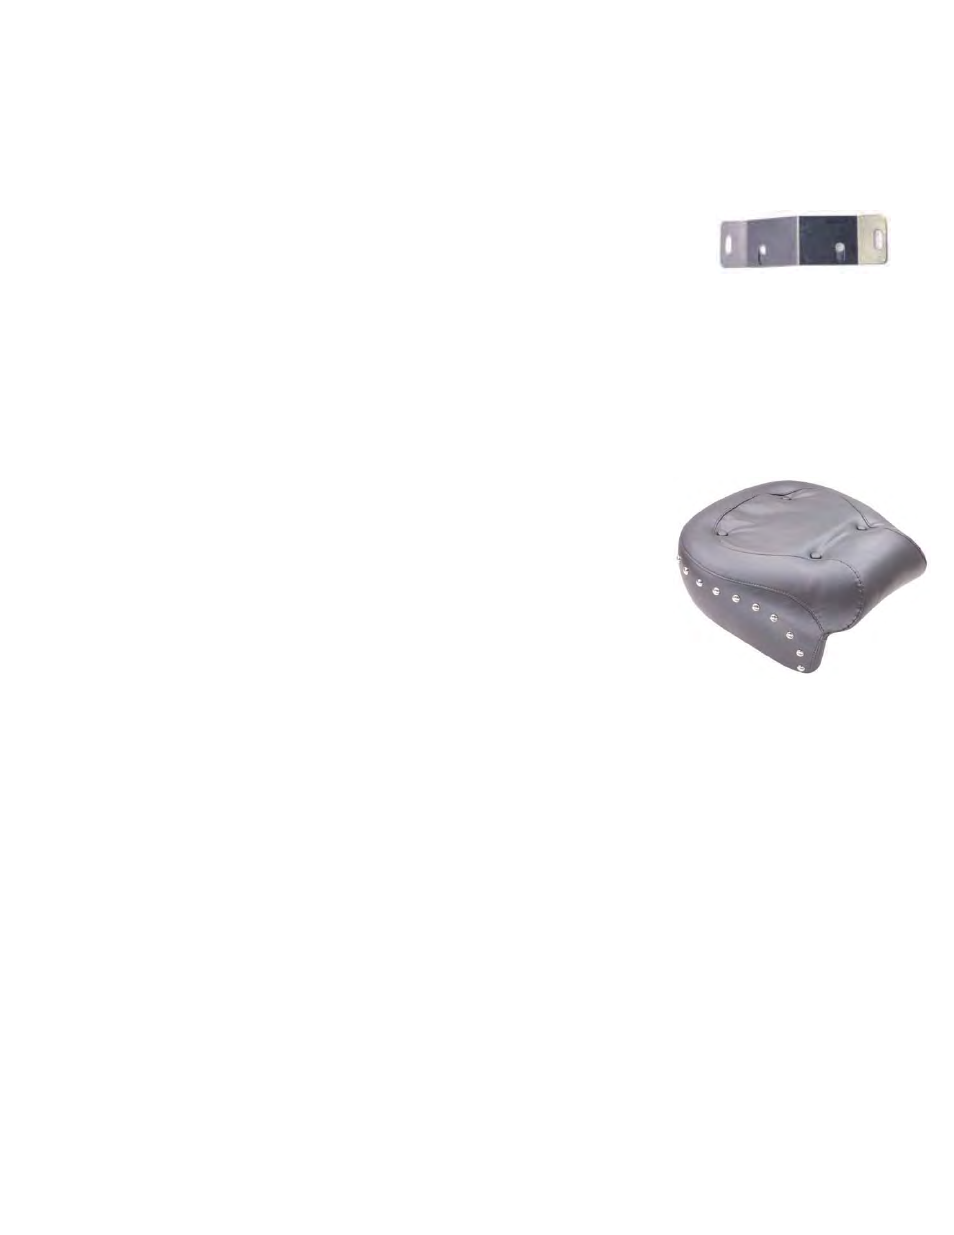 Enjoy the comfort of your new mustang seat | Mustang